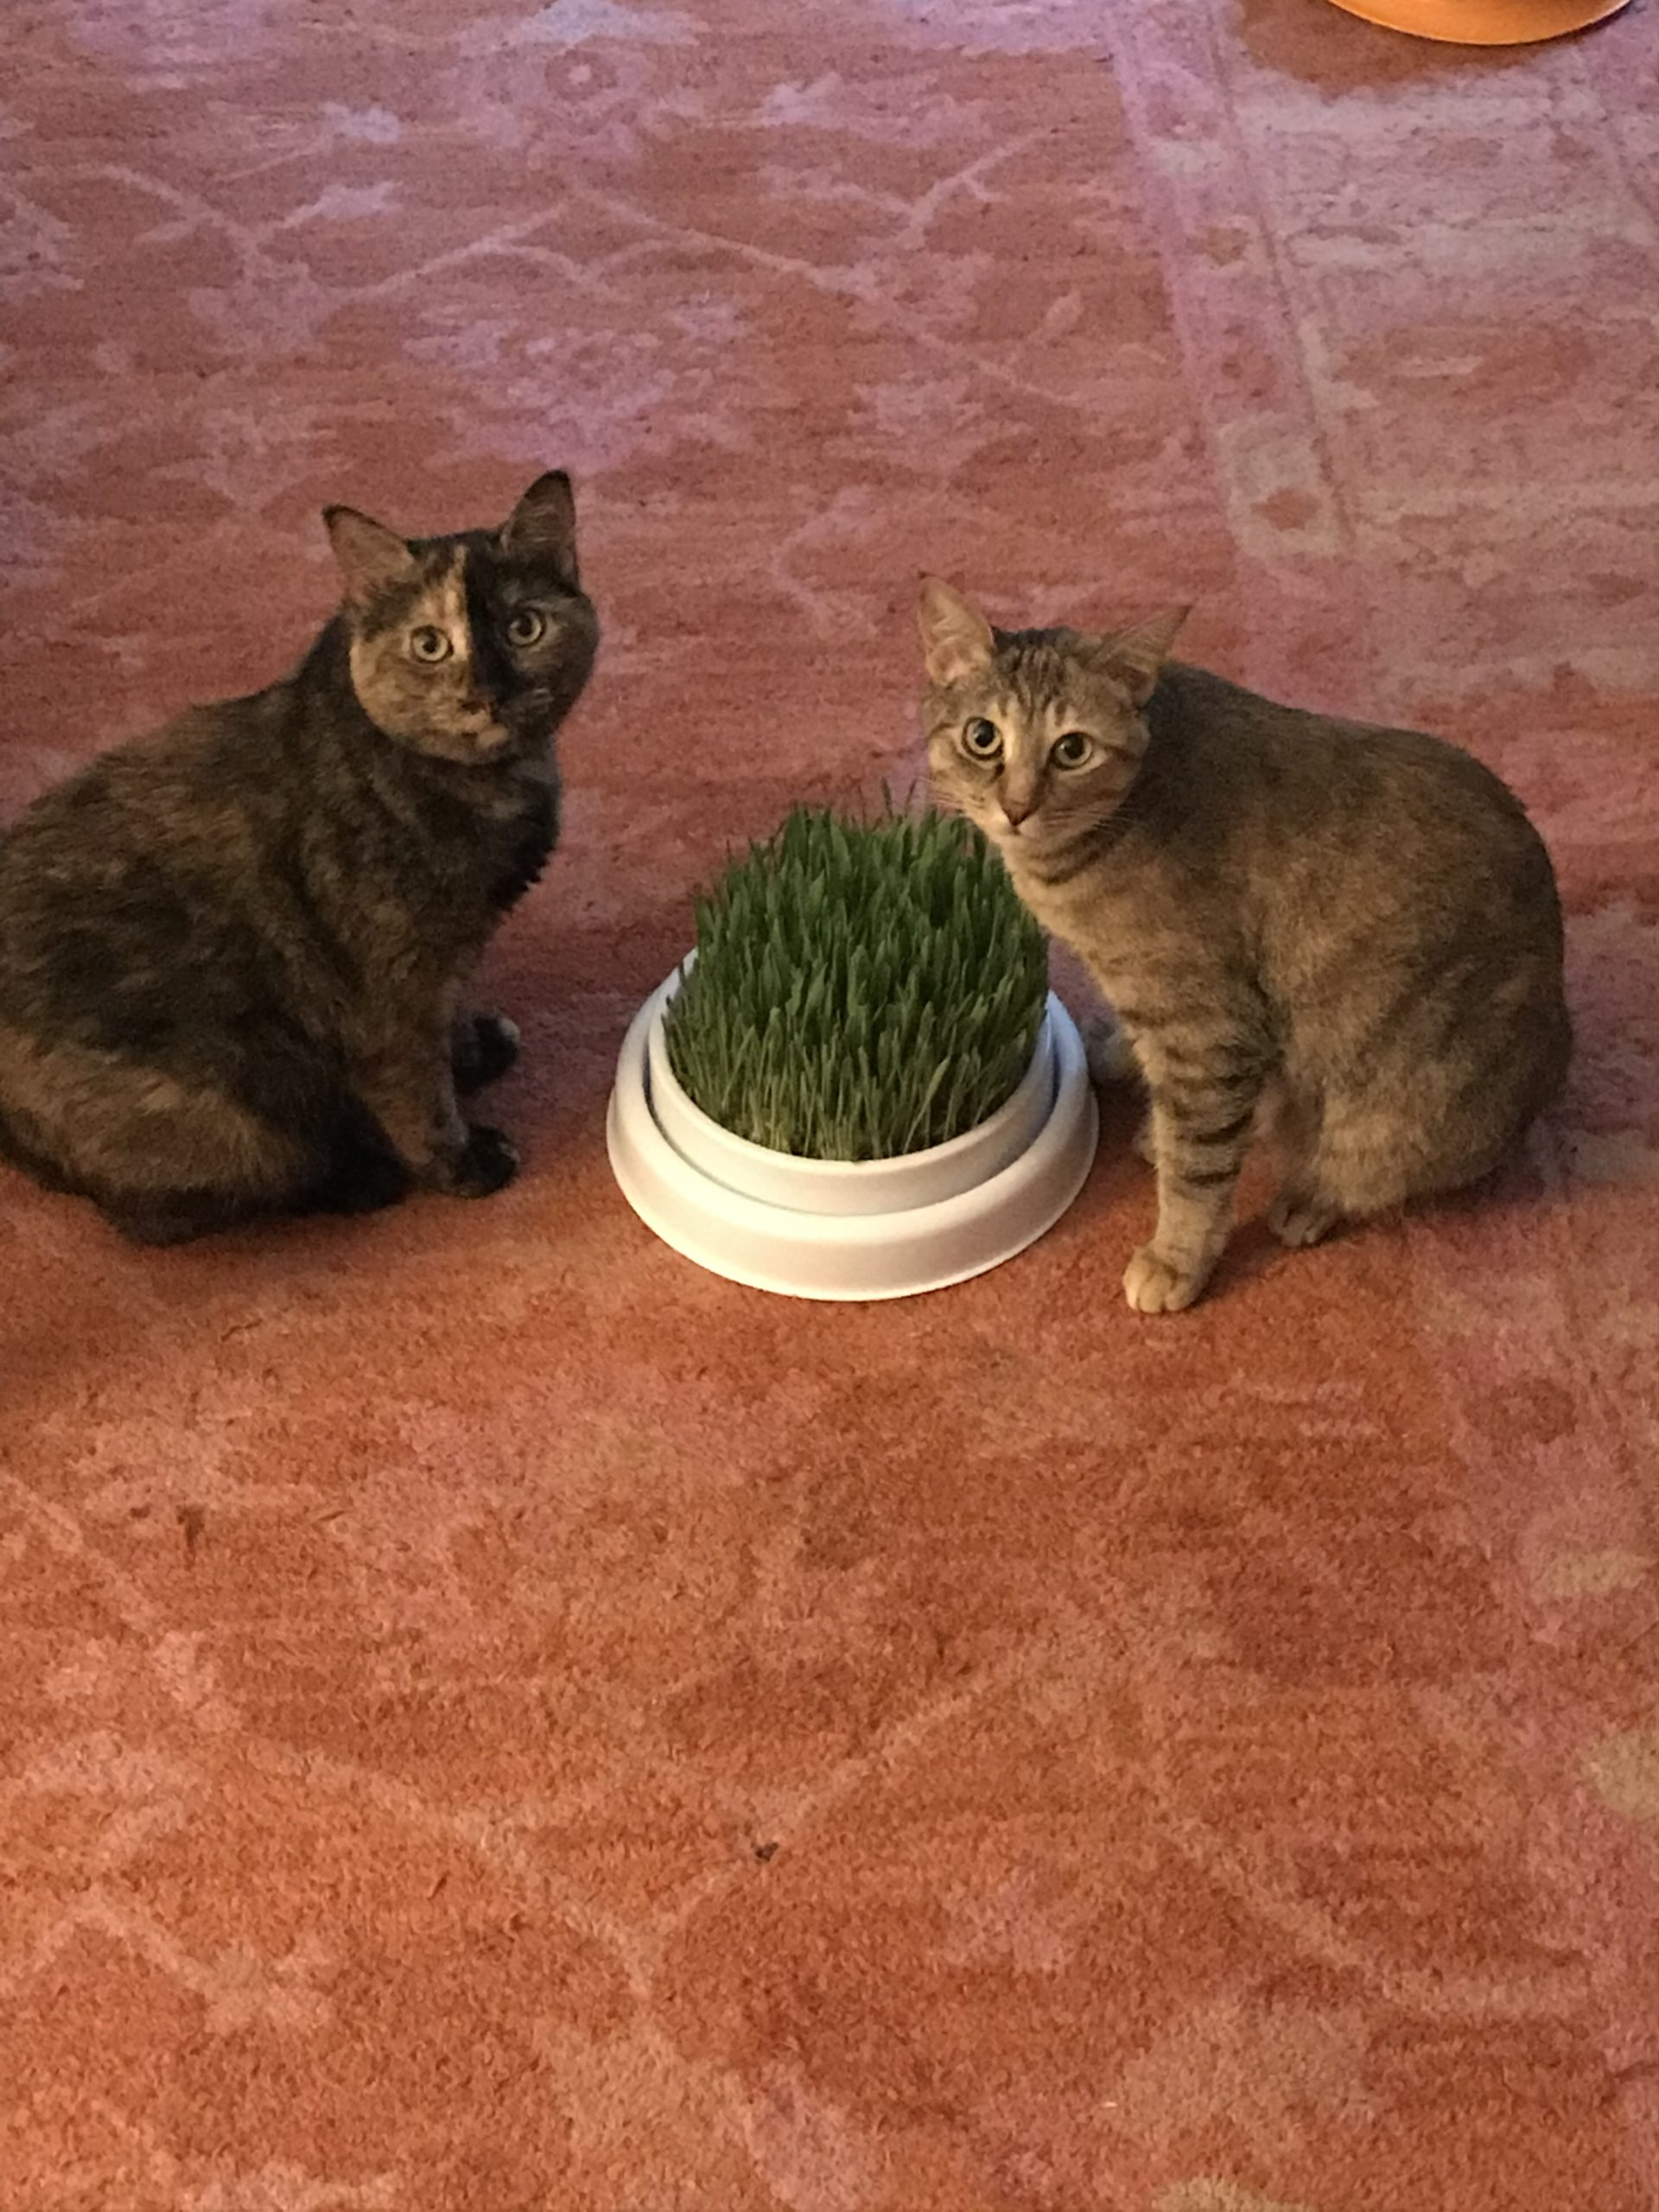 Sharing a plate of fresh cat grass together!